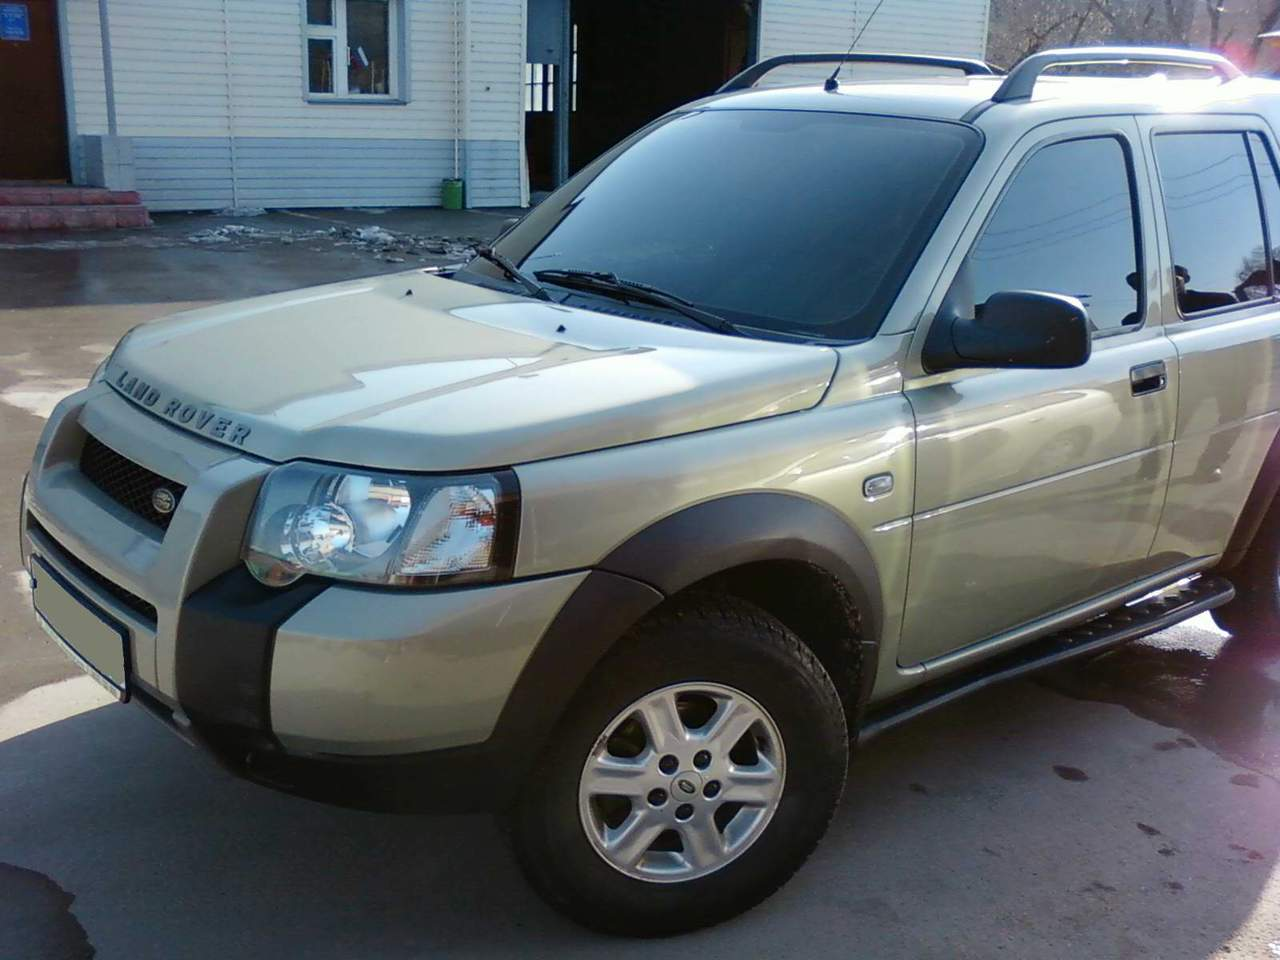 2003 land rover freelander pictures gasoline. Black Bedroom Furniture Sets. Home Design Ideas